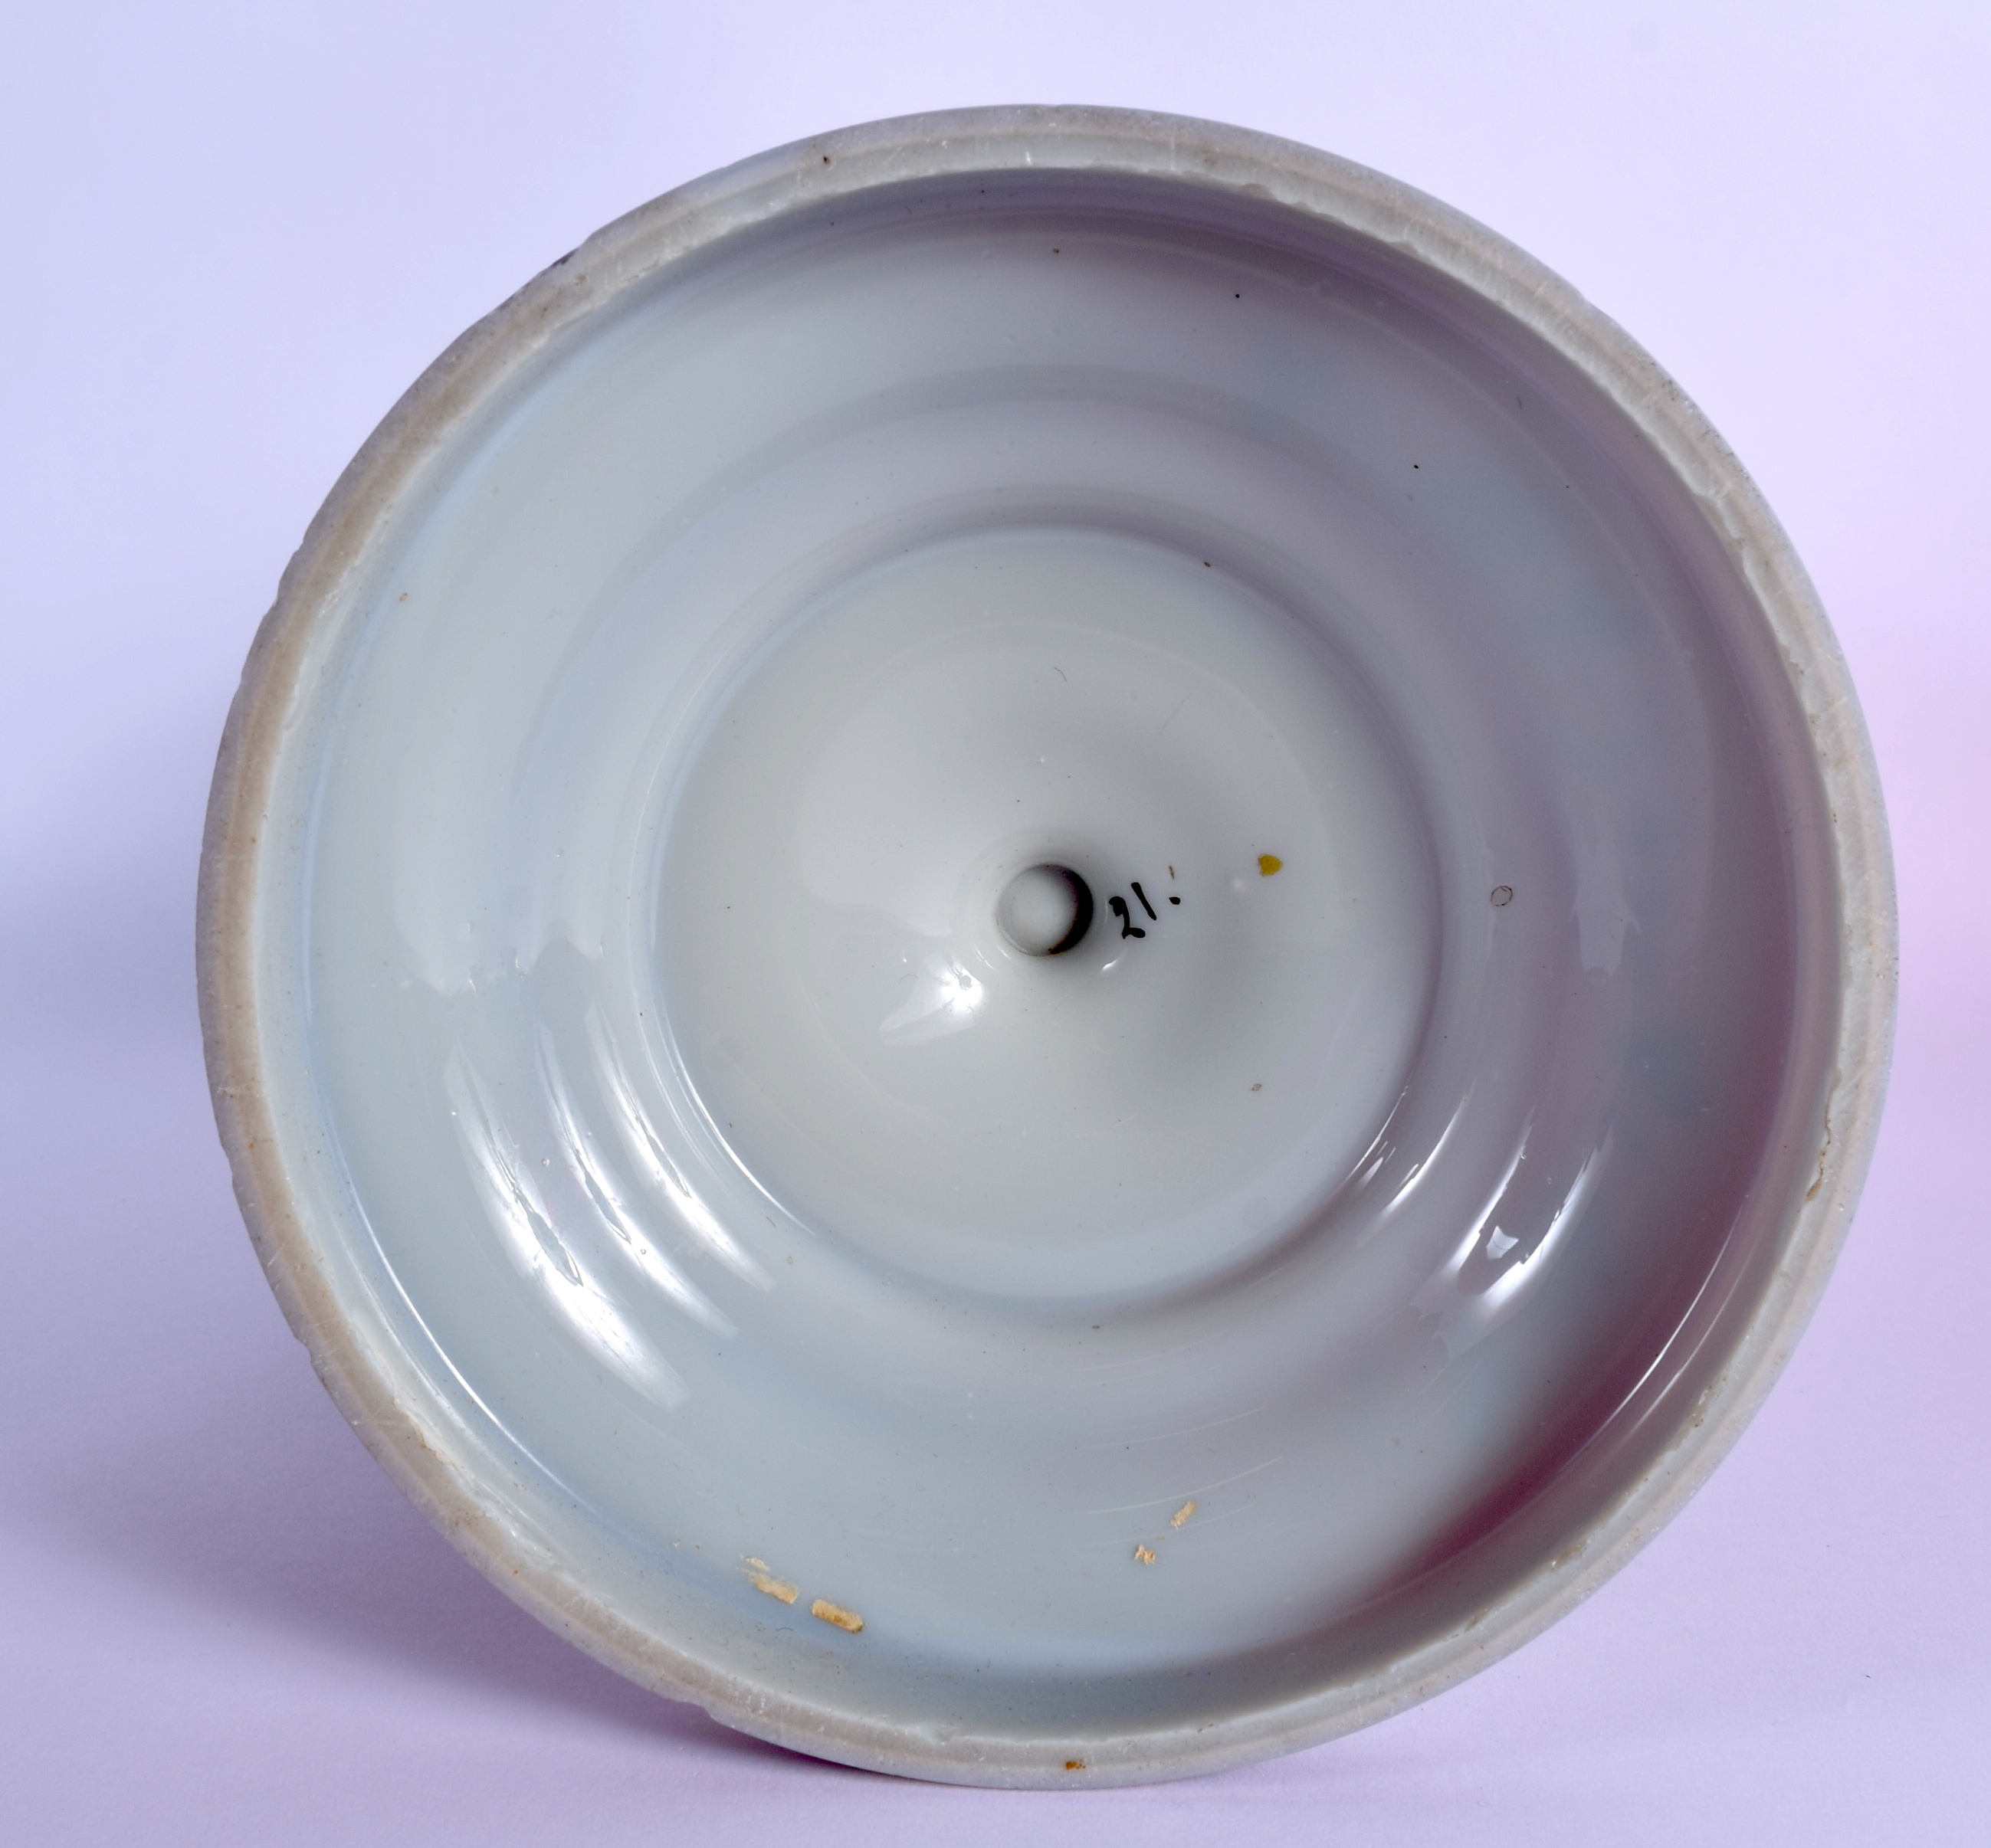 A LATE VICTORIAN/EDWARDIAN ENAMELLED GREY PURPLE GLASS OIL LAMP BASE decorated with a bird. 27 cm hi - Image 3 of 3